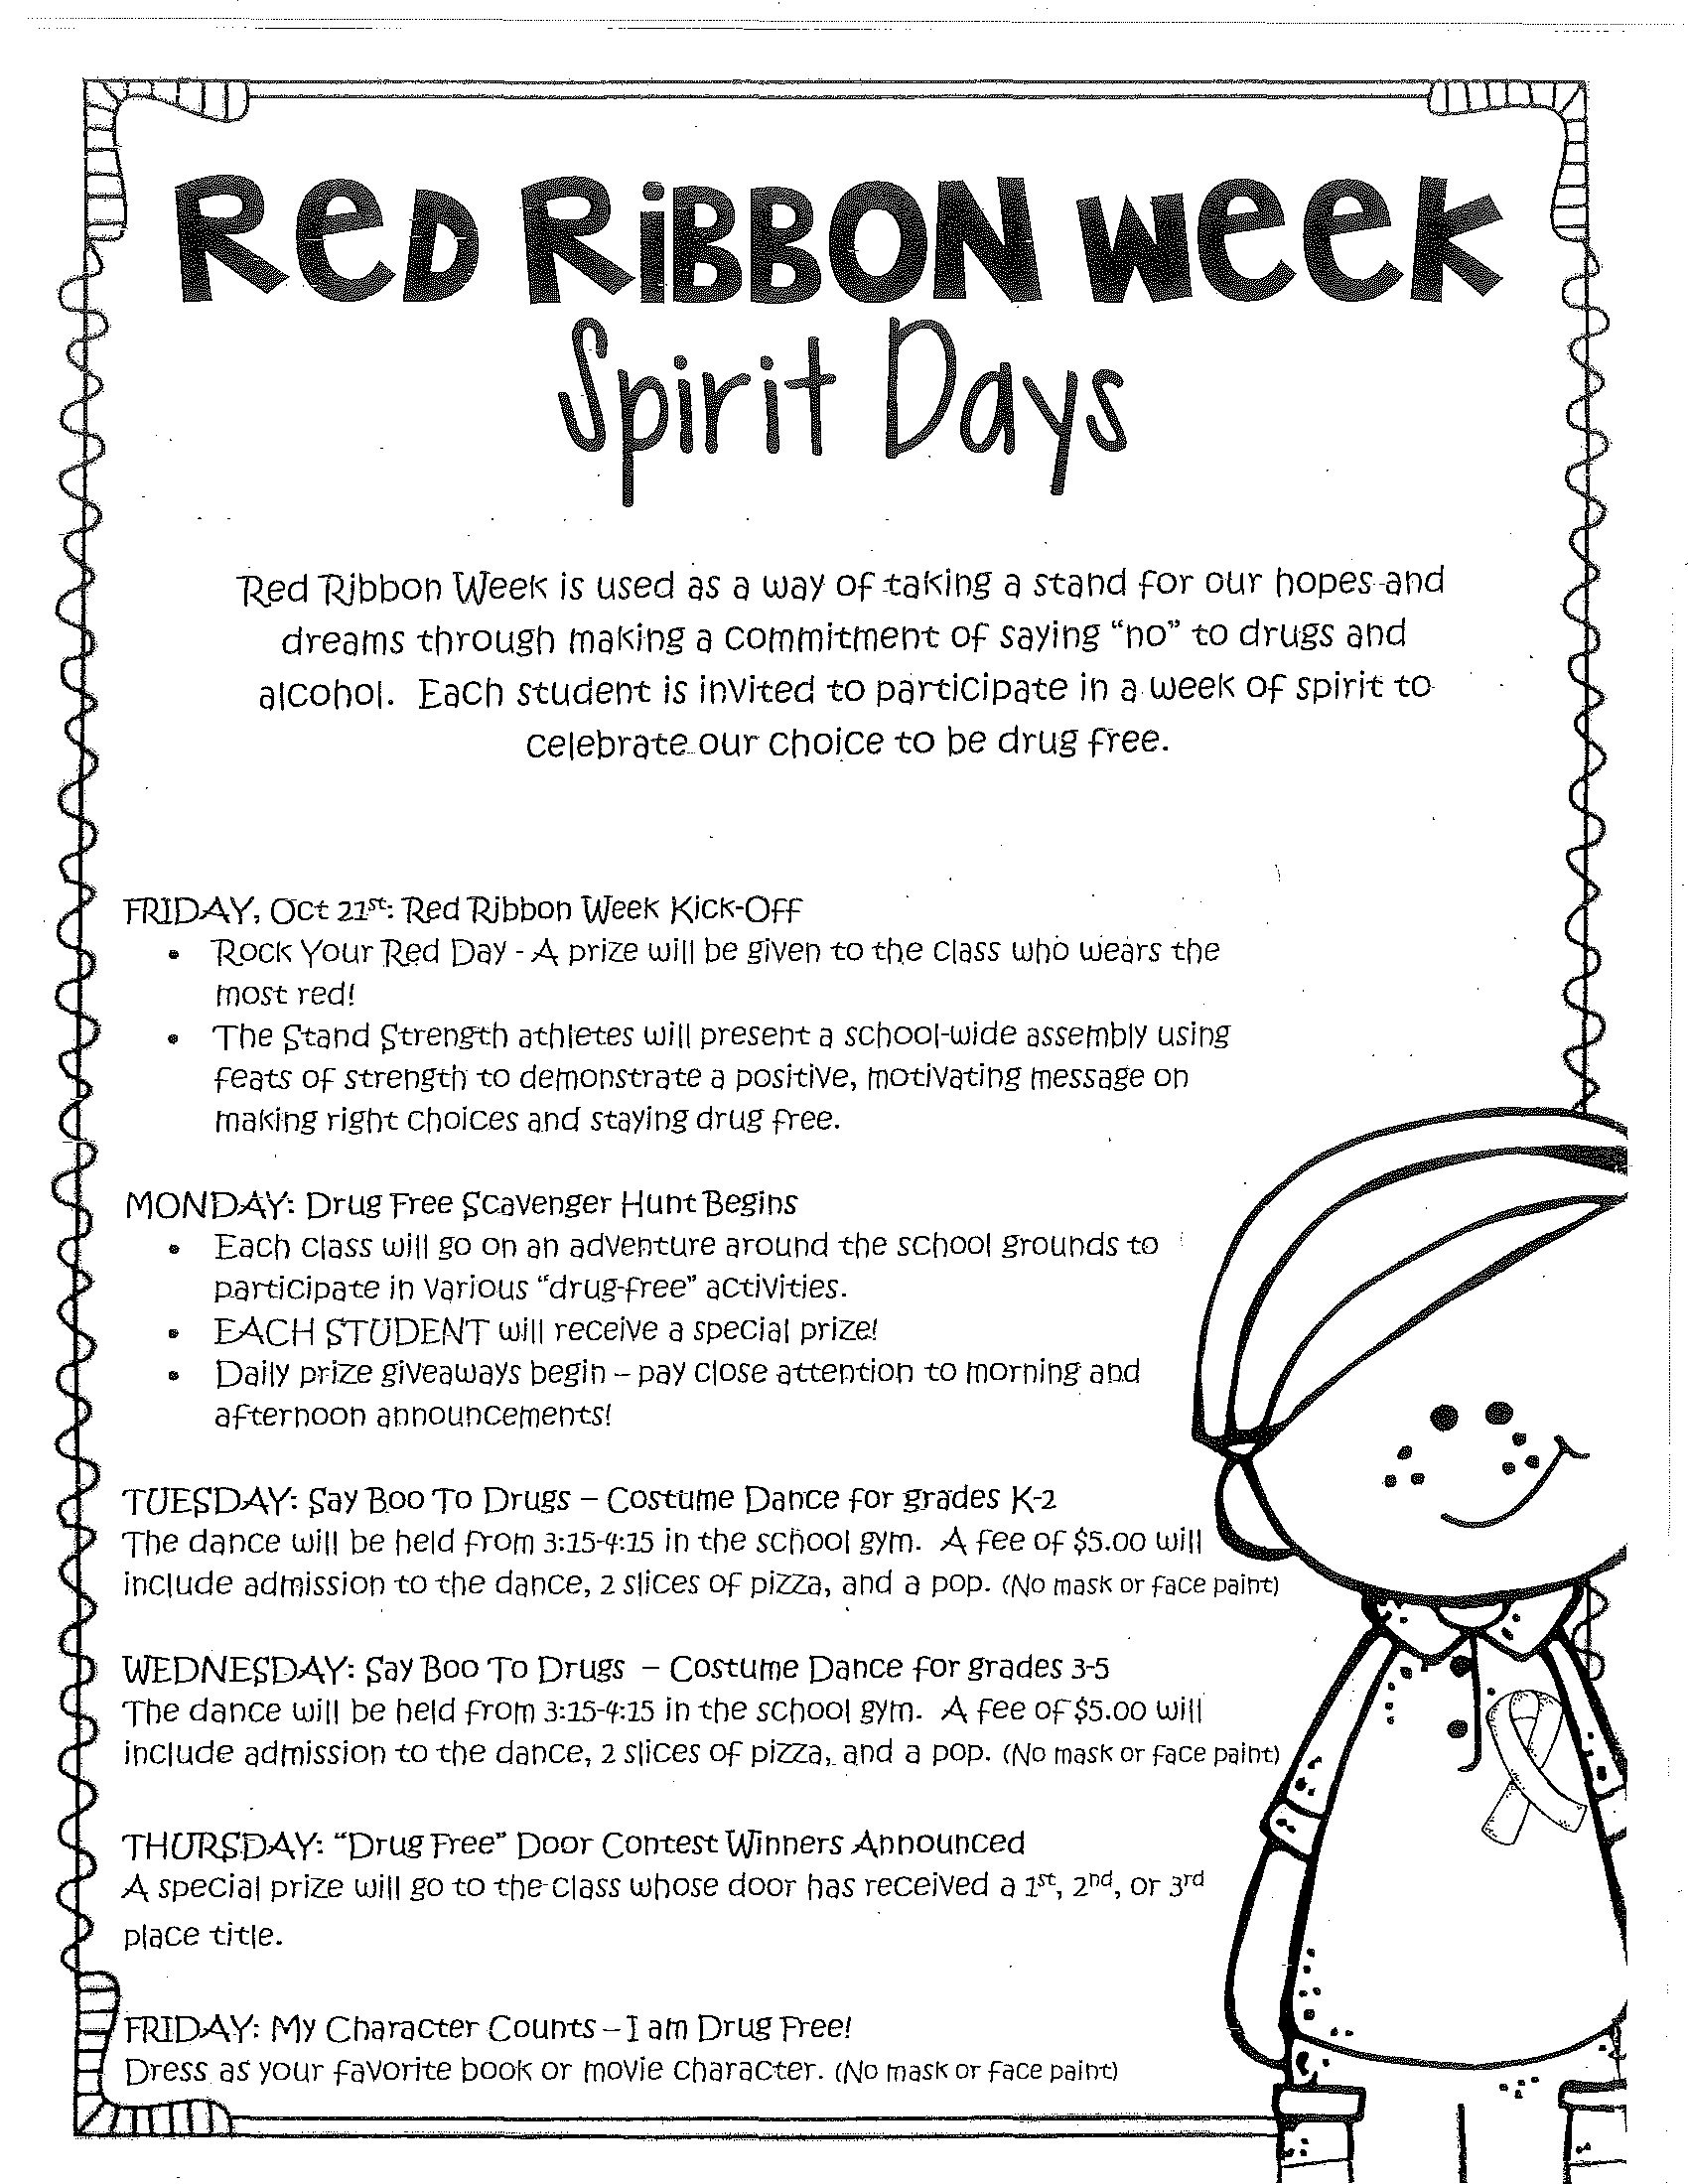 10 Most Recommended Spirit Week Ideas For Elementary School mves red ribbon week spirit days mt vernon elementary school